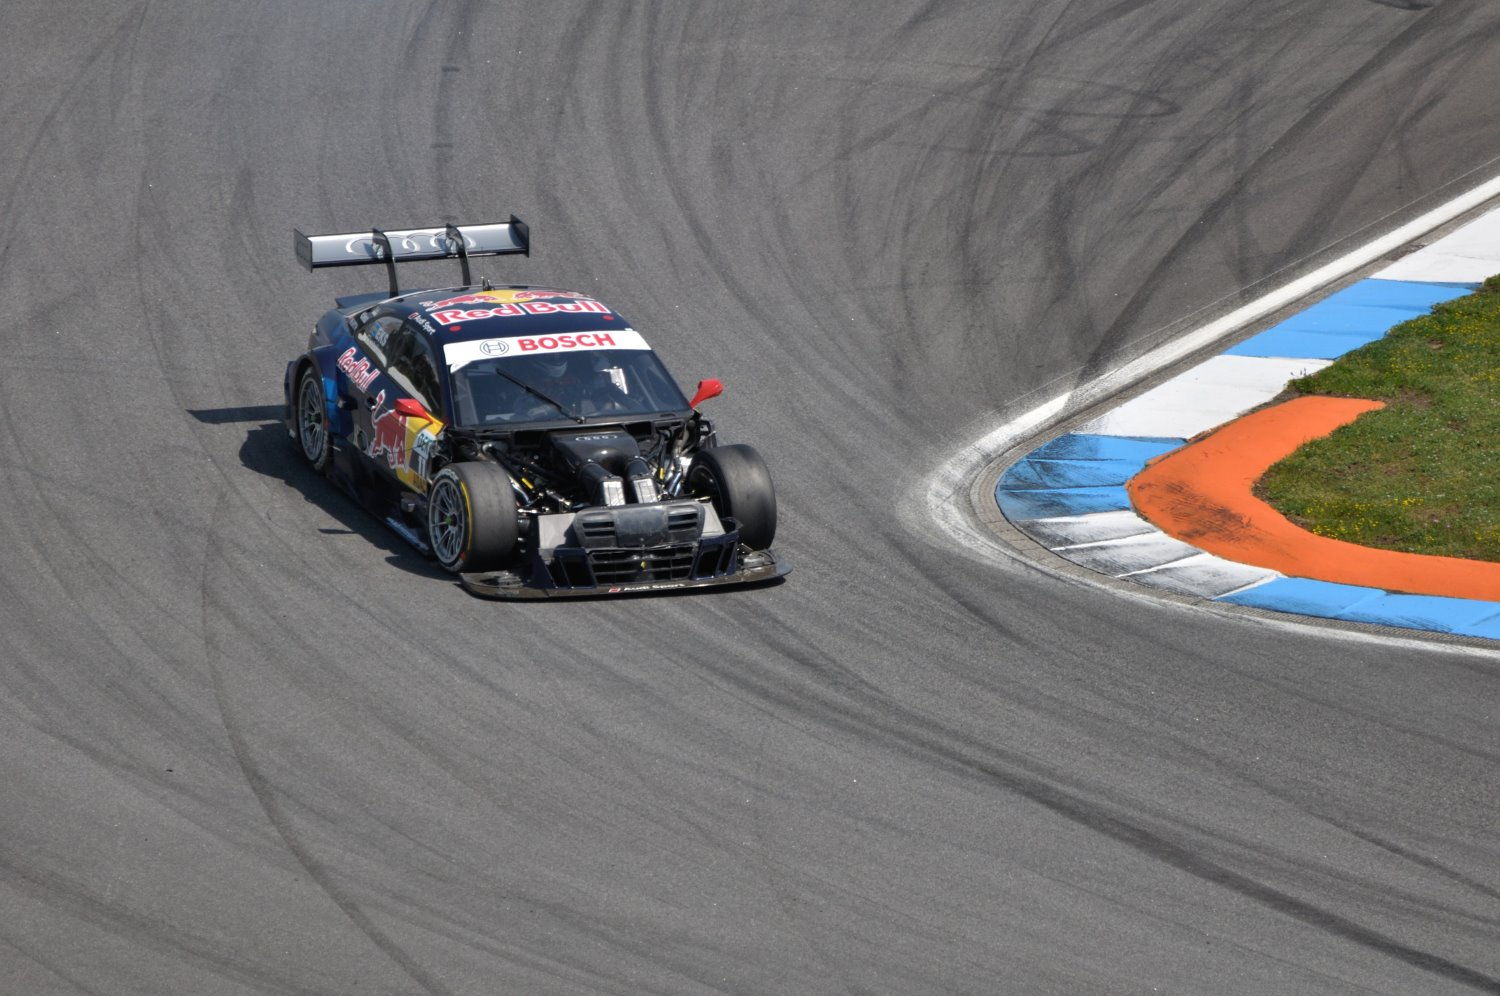 a fast-moving racecar